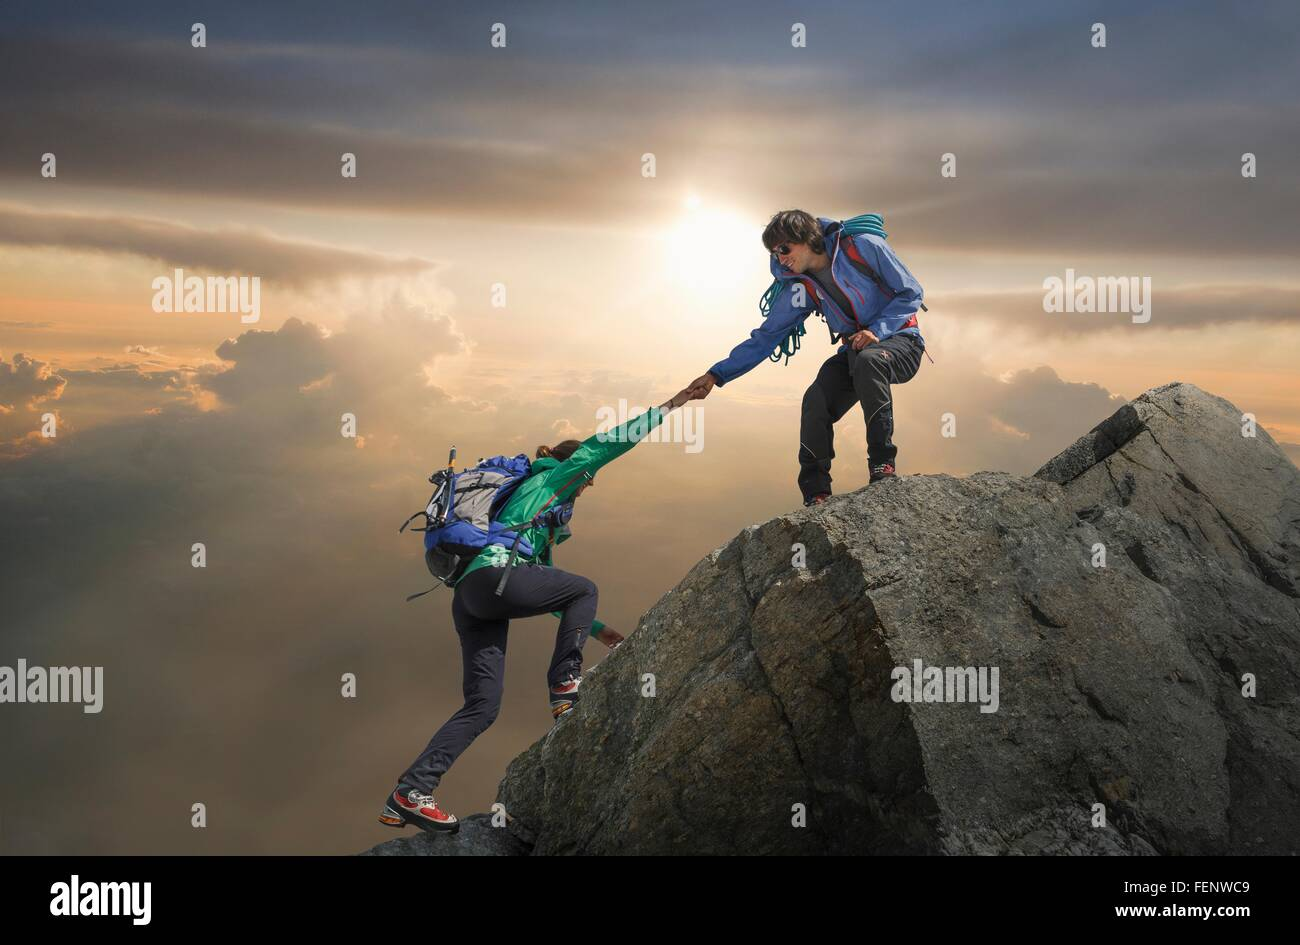 Climber helping partner reach mountain top, Mont Blanc, France - Stock Image